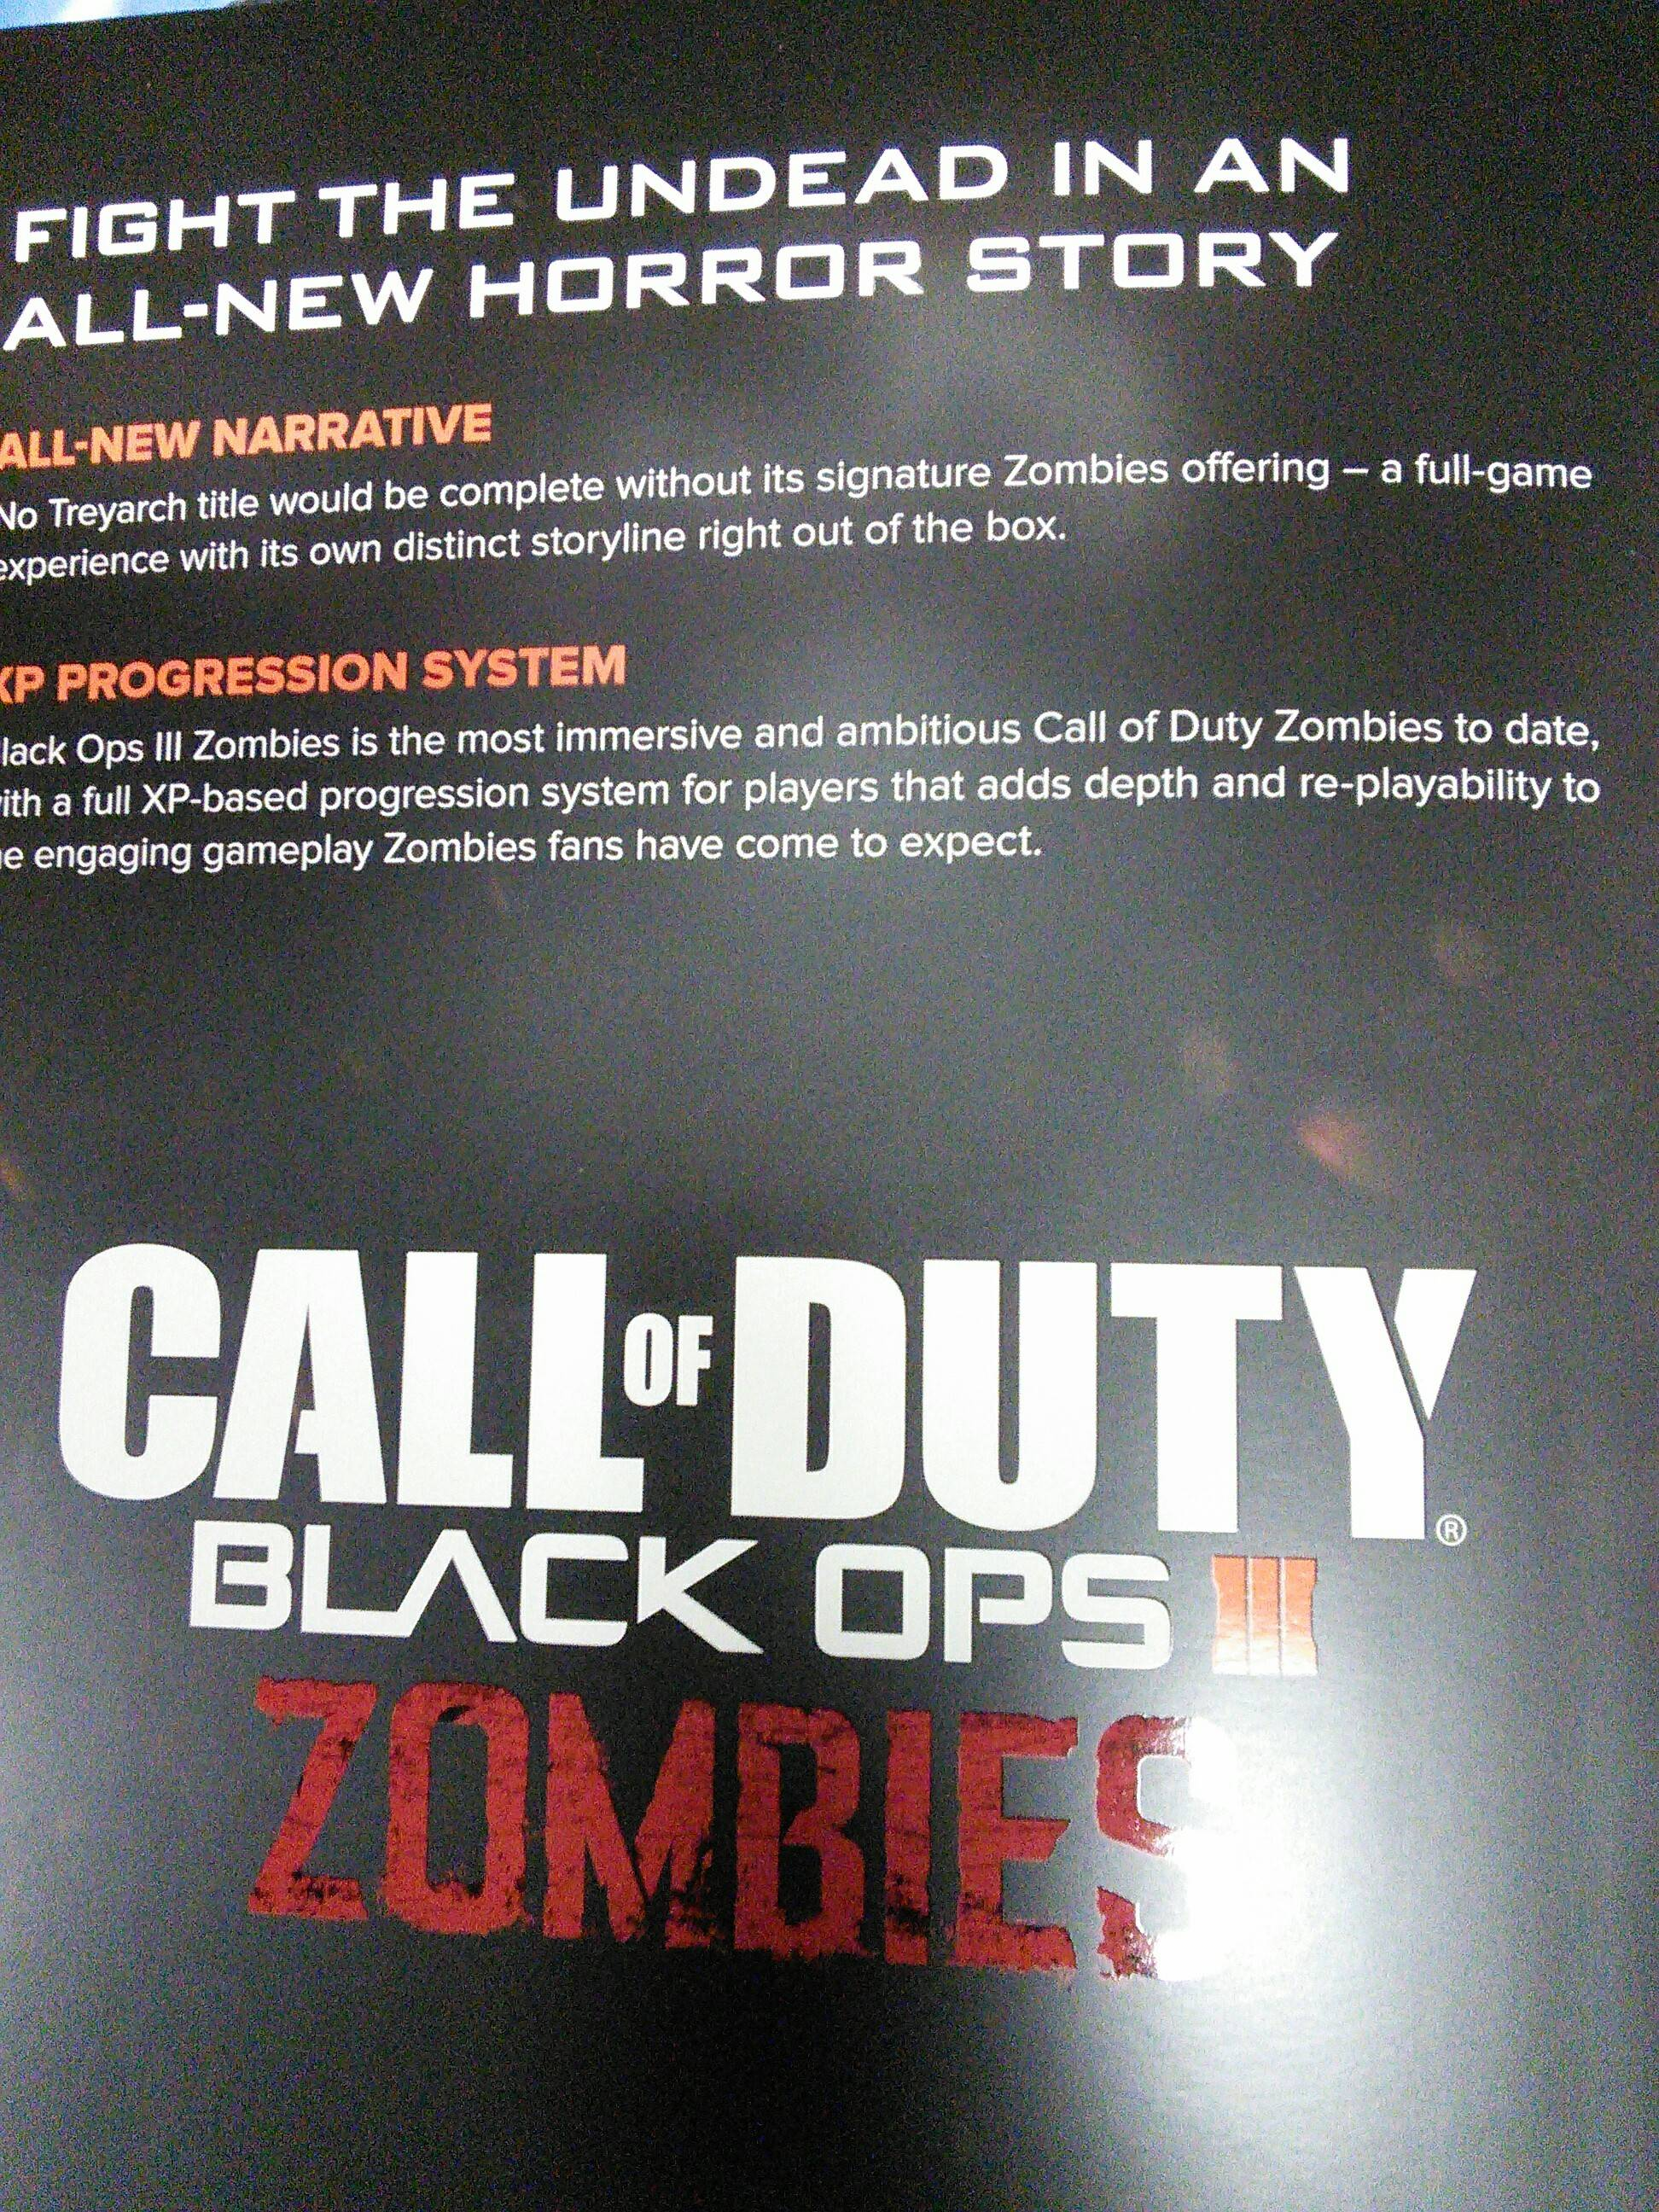 3 player cod black ops zombies